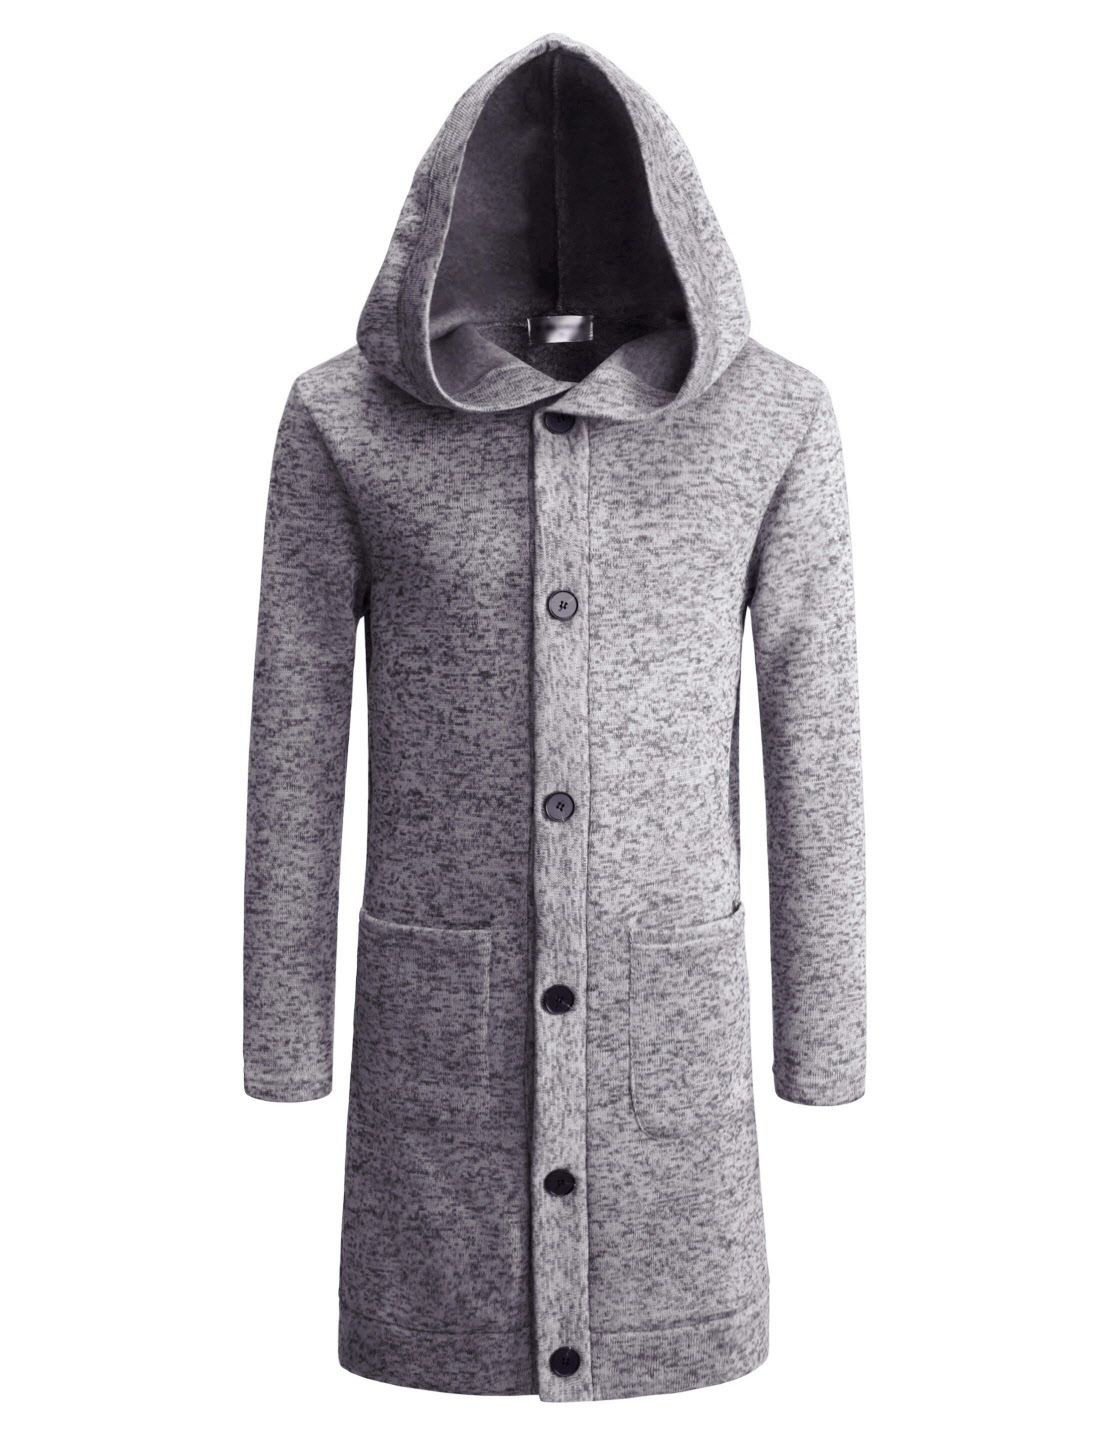 NKTNC606) TheLees Mens Slim Fit Fleece Lining Hooded 6 Button Long ...